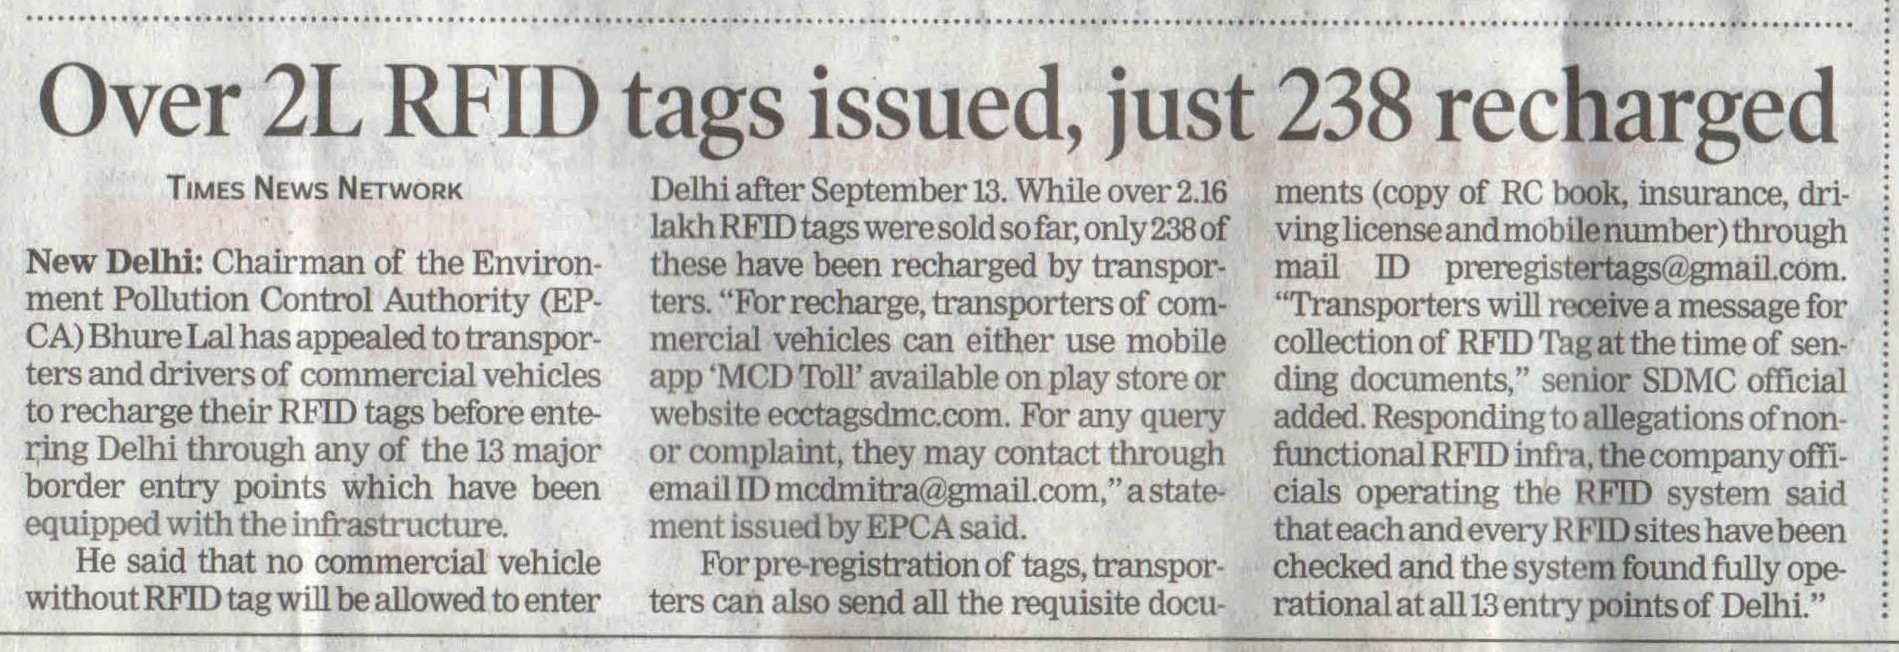 Over 2L RFIDtags issued, just 238 recharged